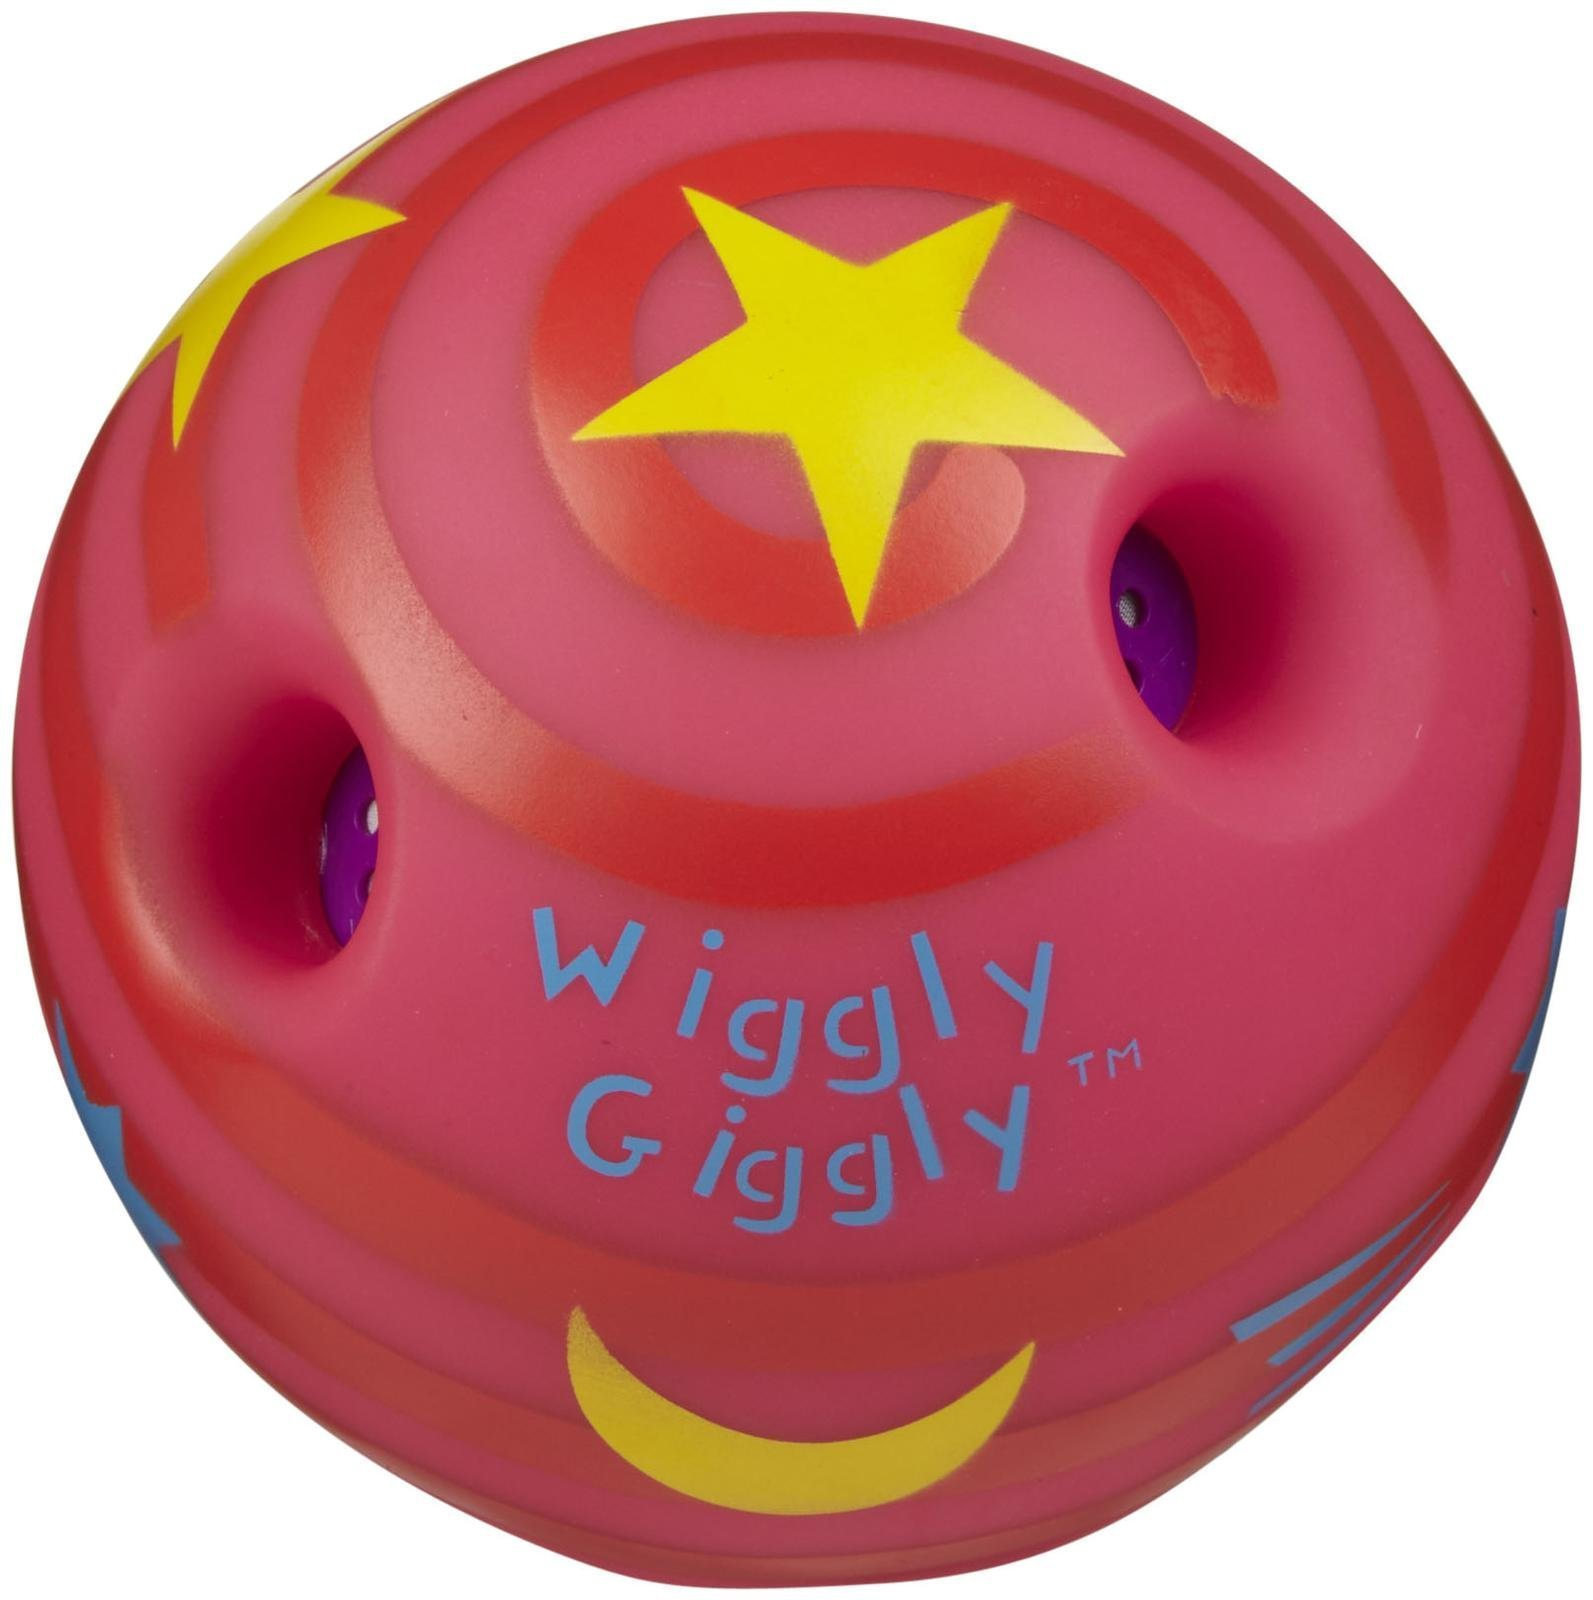 Amazon.com : Toysmith Mini Wiggly Giggly Ball Pink/Blue